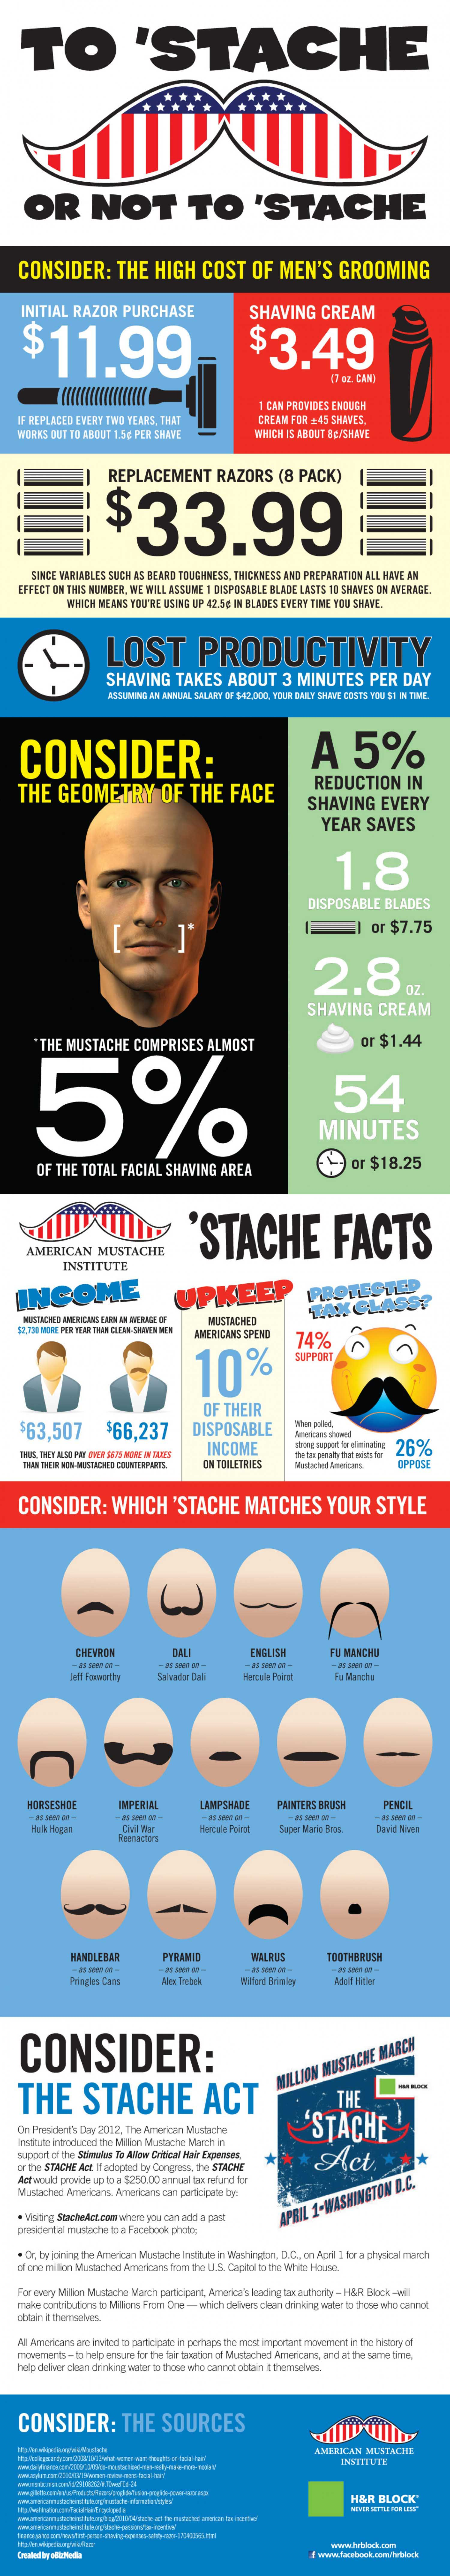 To 'Stache or Not to 'Stache: The Plight of the Mustached American